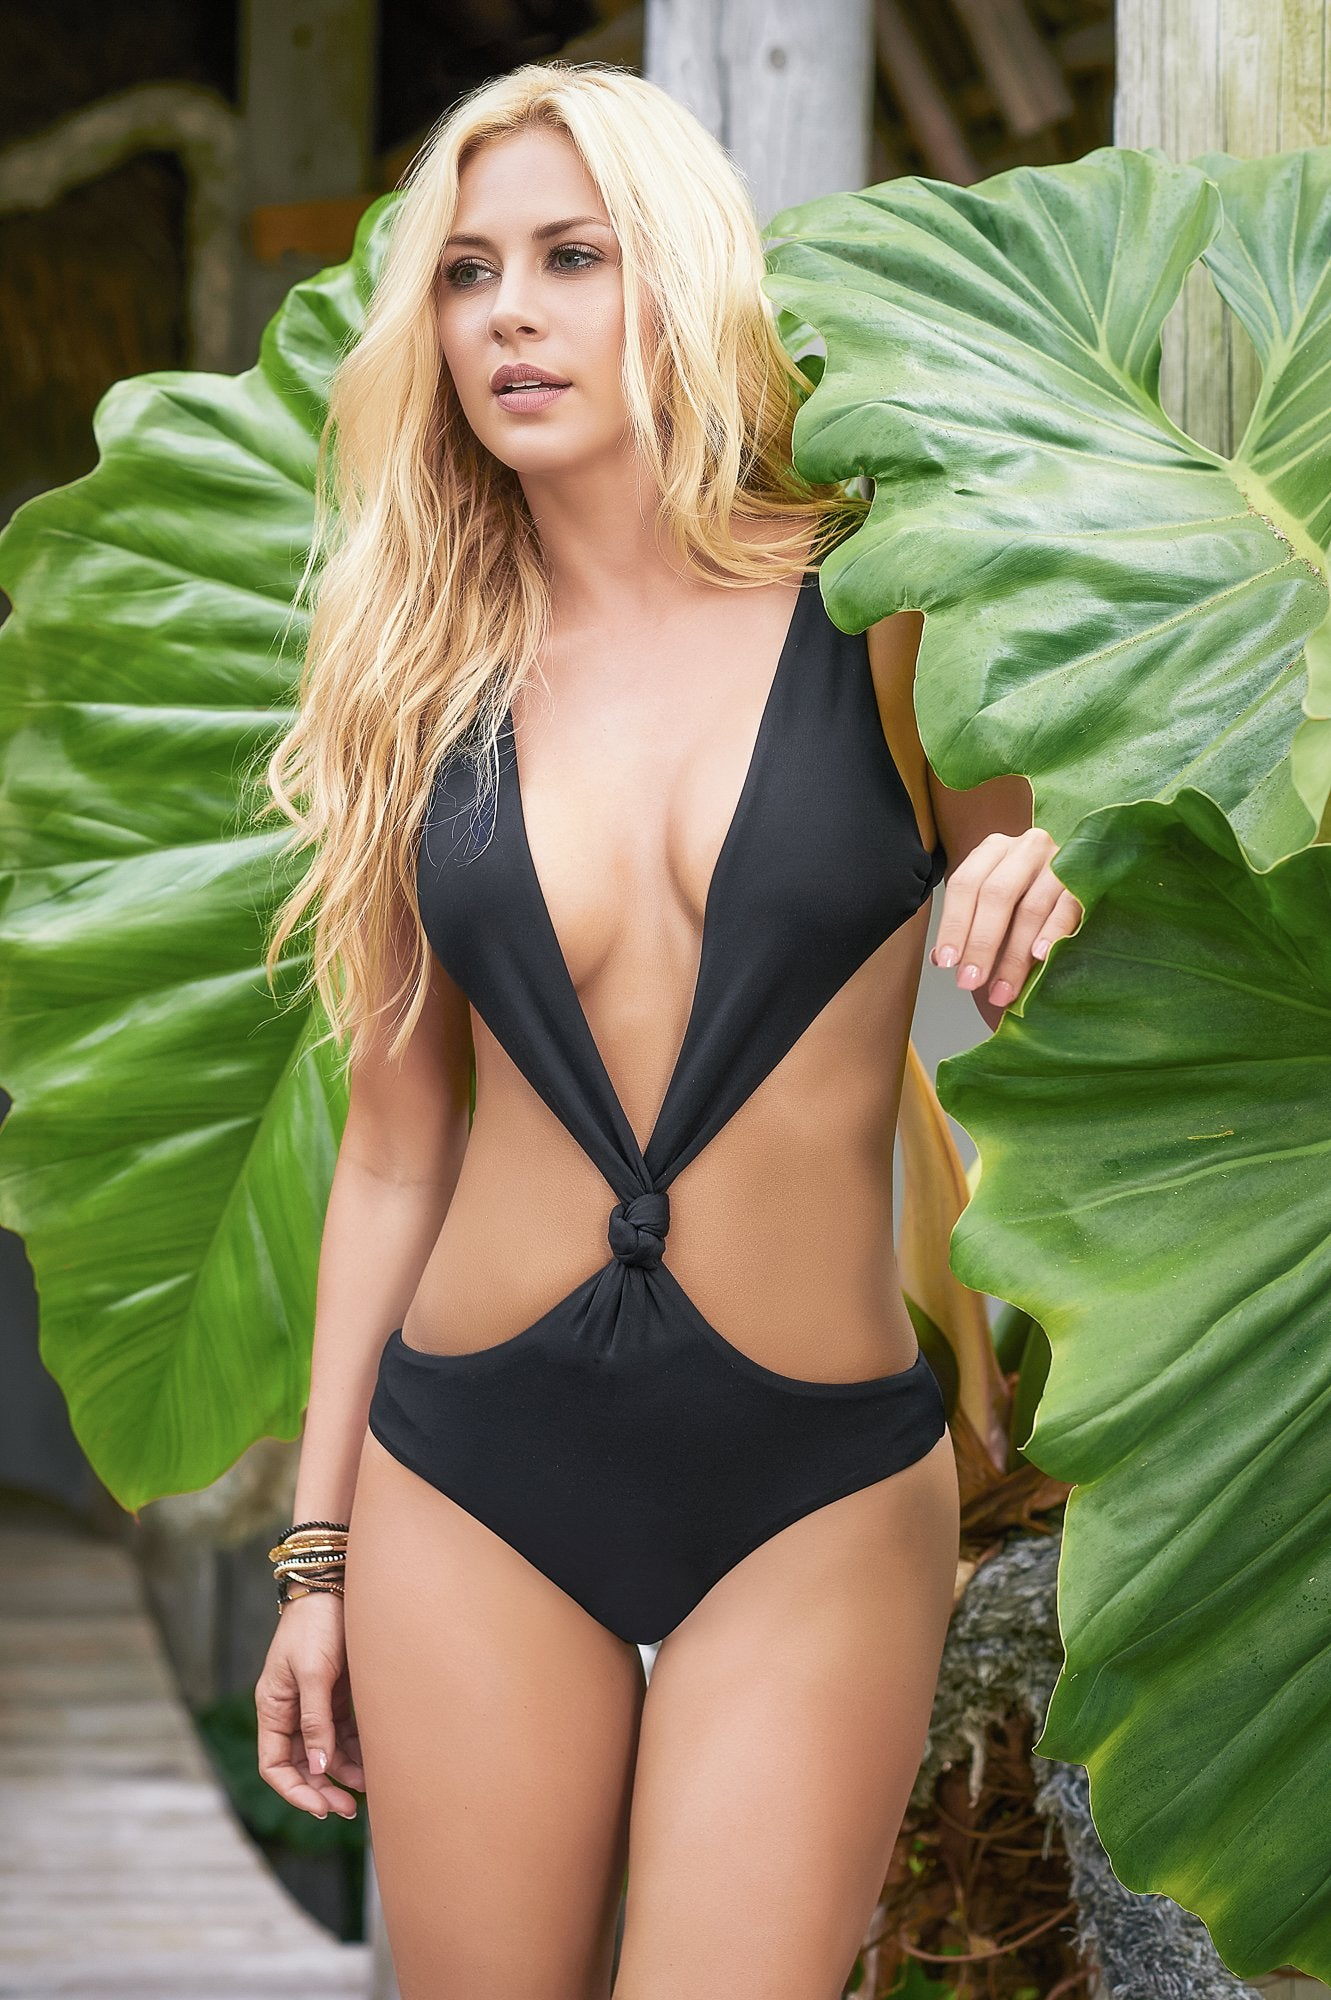 d9591bf710f Pool Party One Piece Black Thong One Piece Tropical Swimwear Plunging V  Neck One Piece Thong Monokini ...